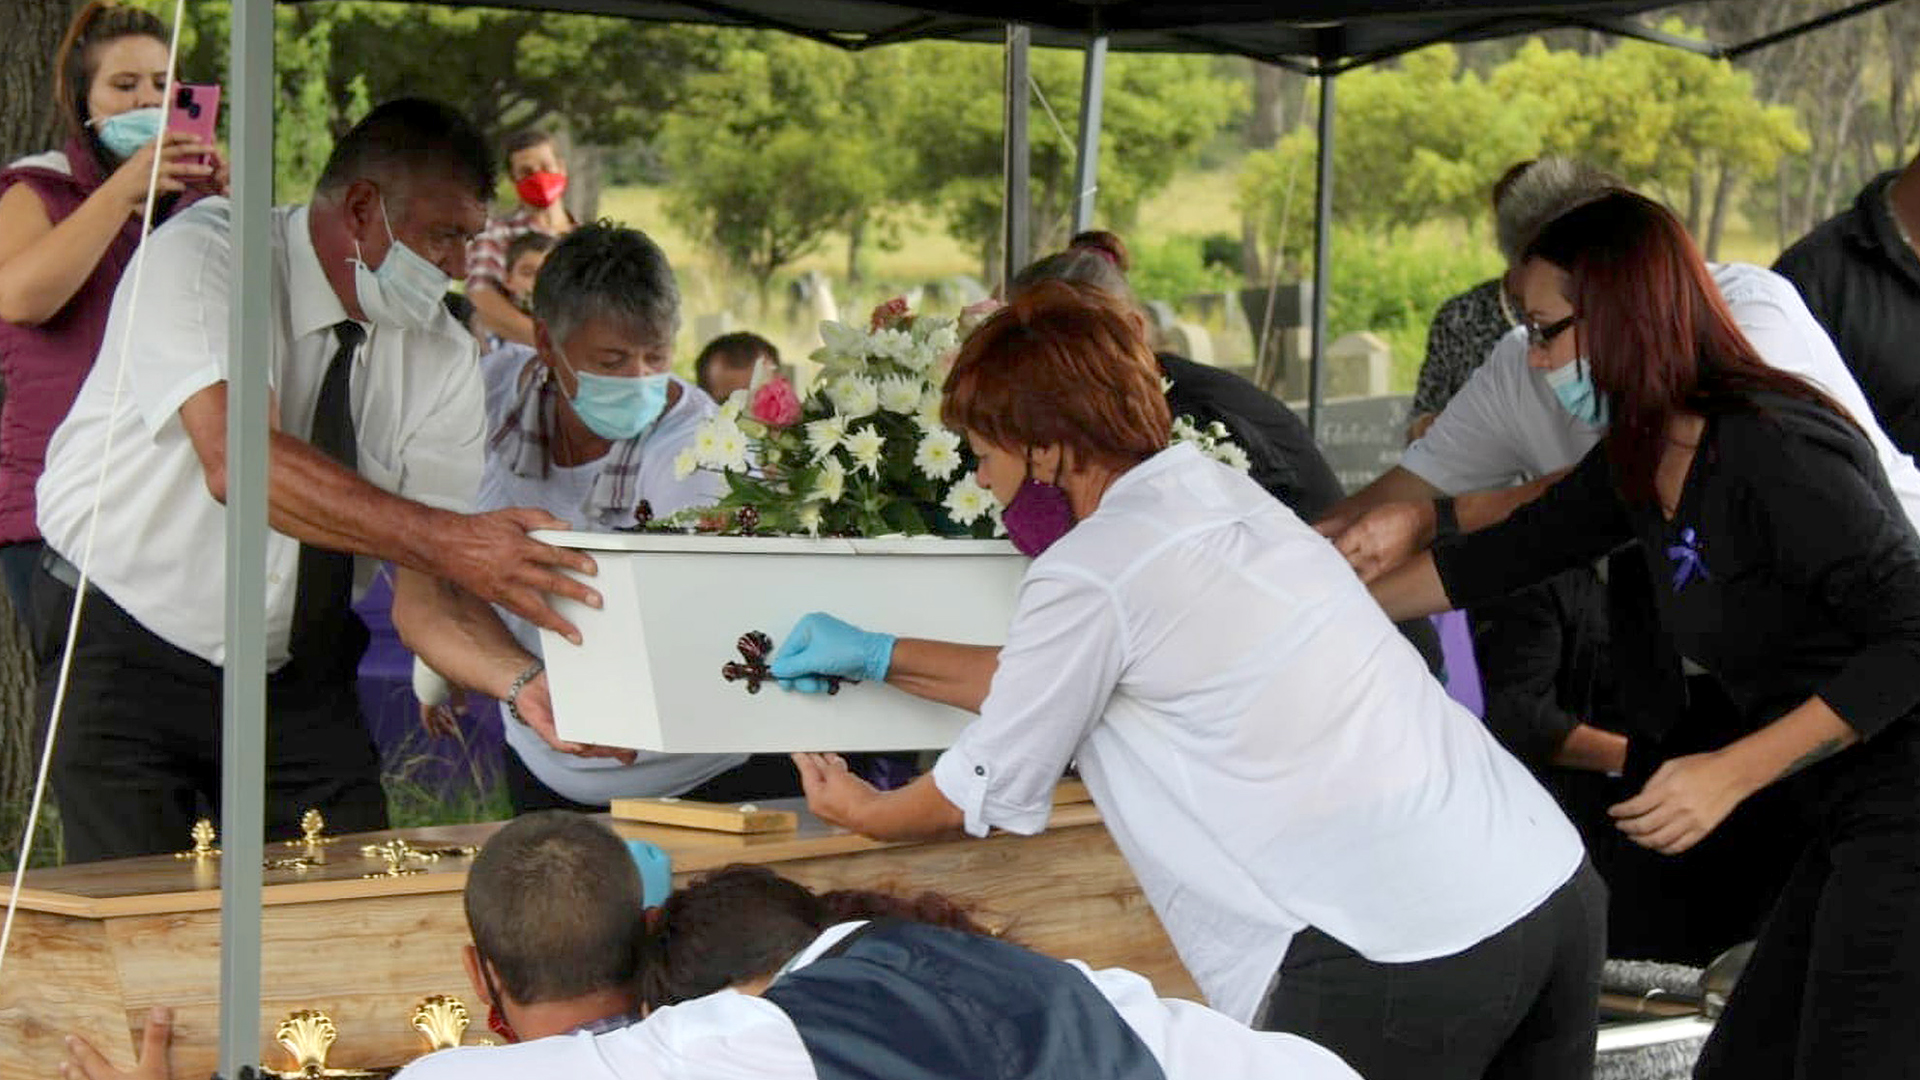 Mother, Daughter Gagged And Killed By Husband in South Africa